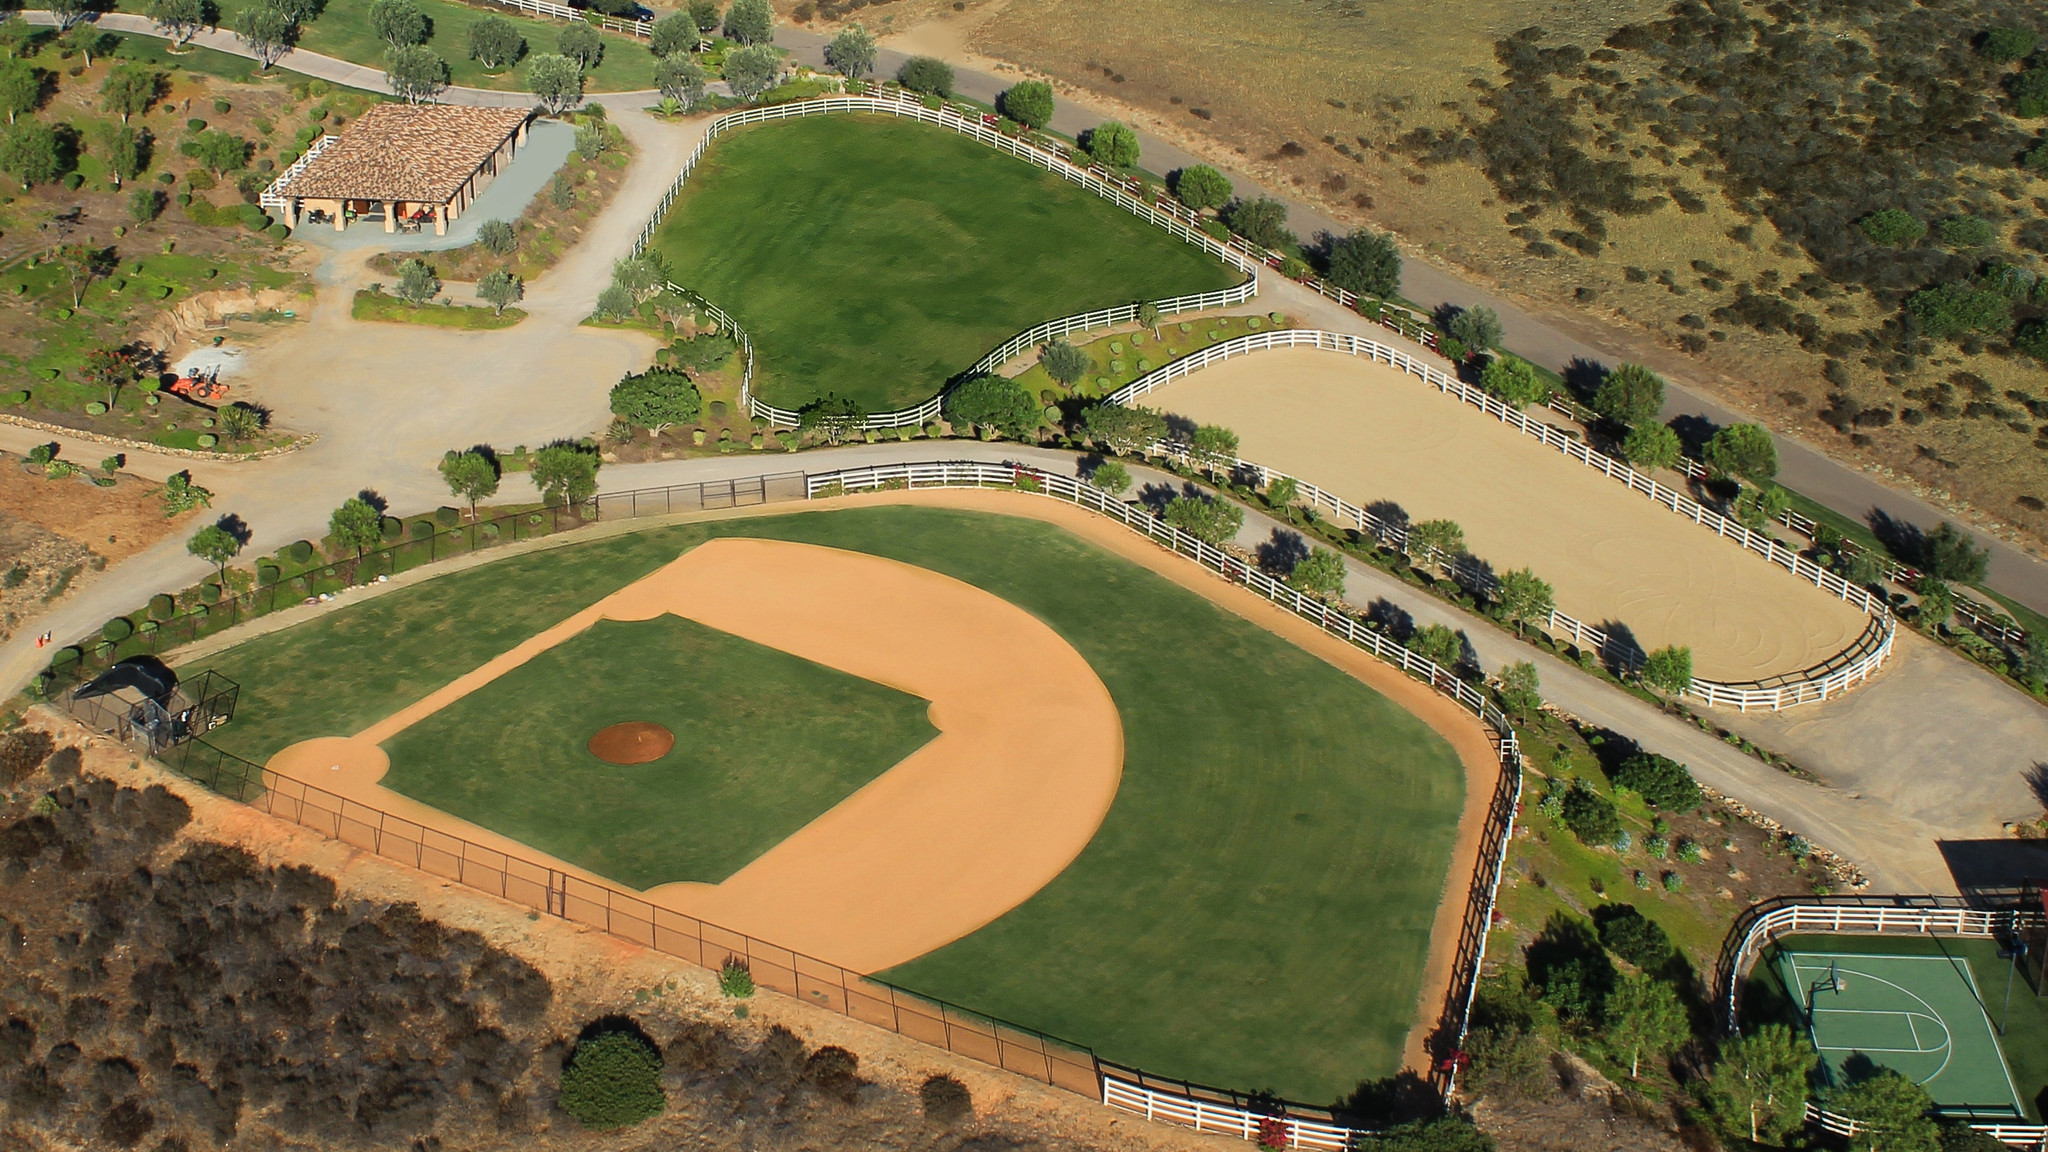 poway home for sale features full sized baseball diamond la times